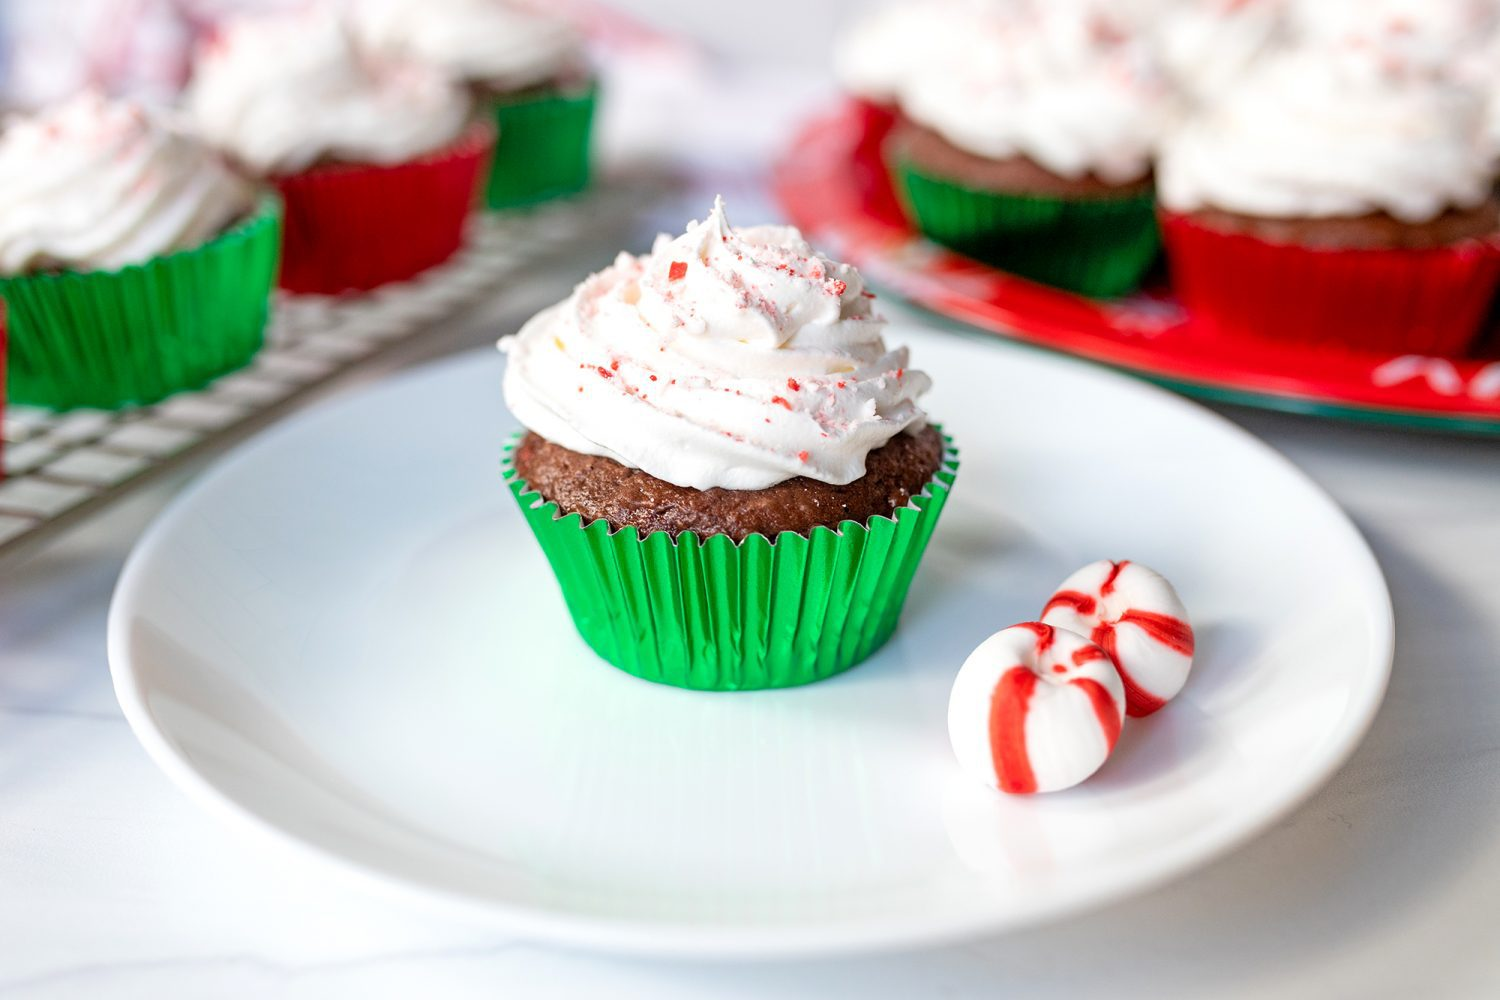 a chocolate peppermint cupcake on a plate with peppermint candies